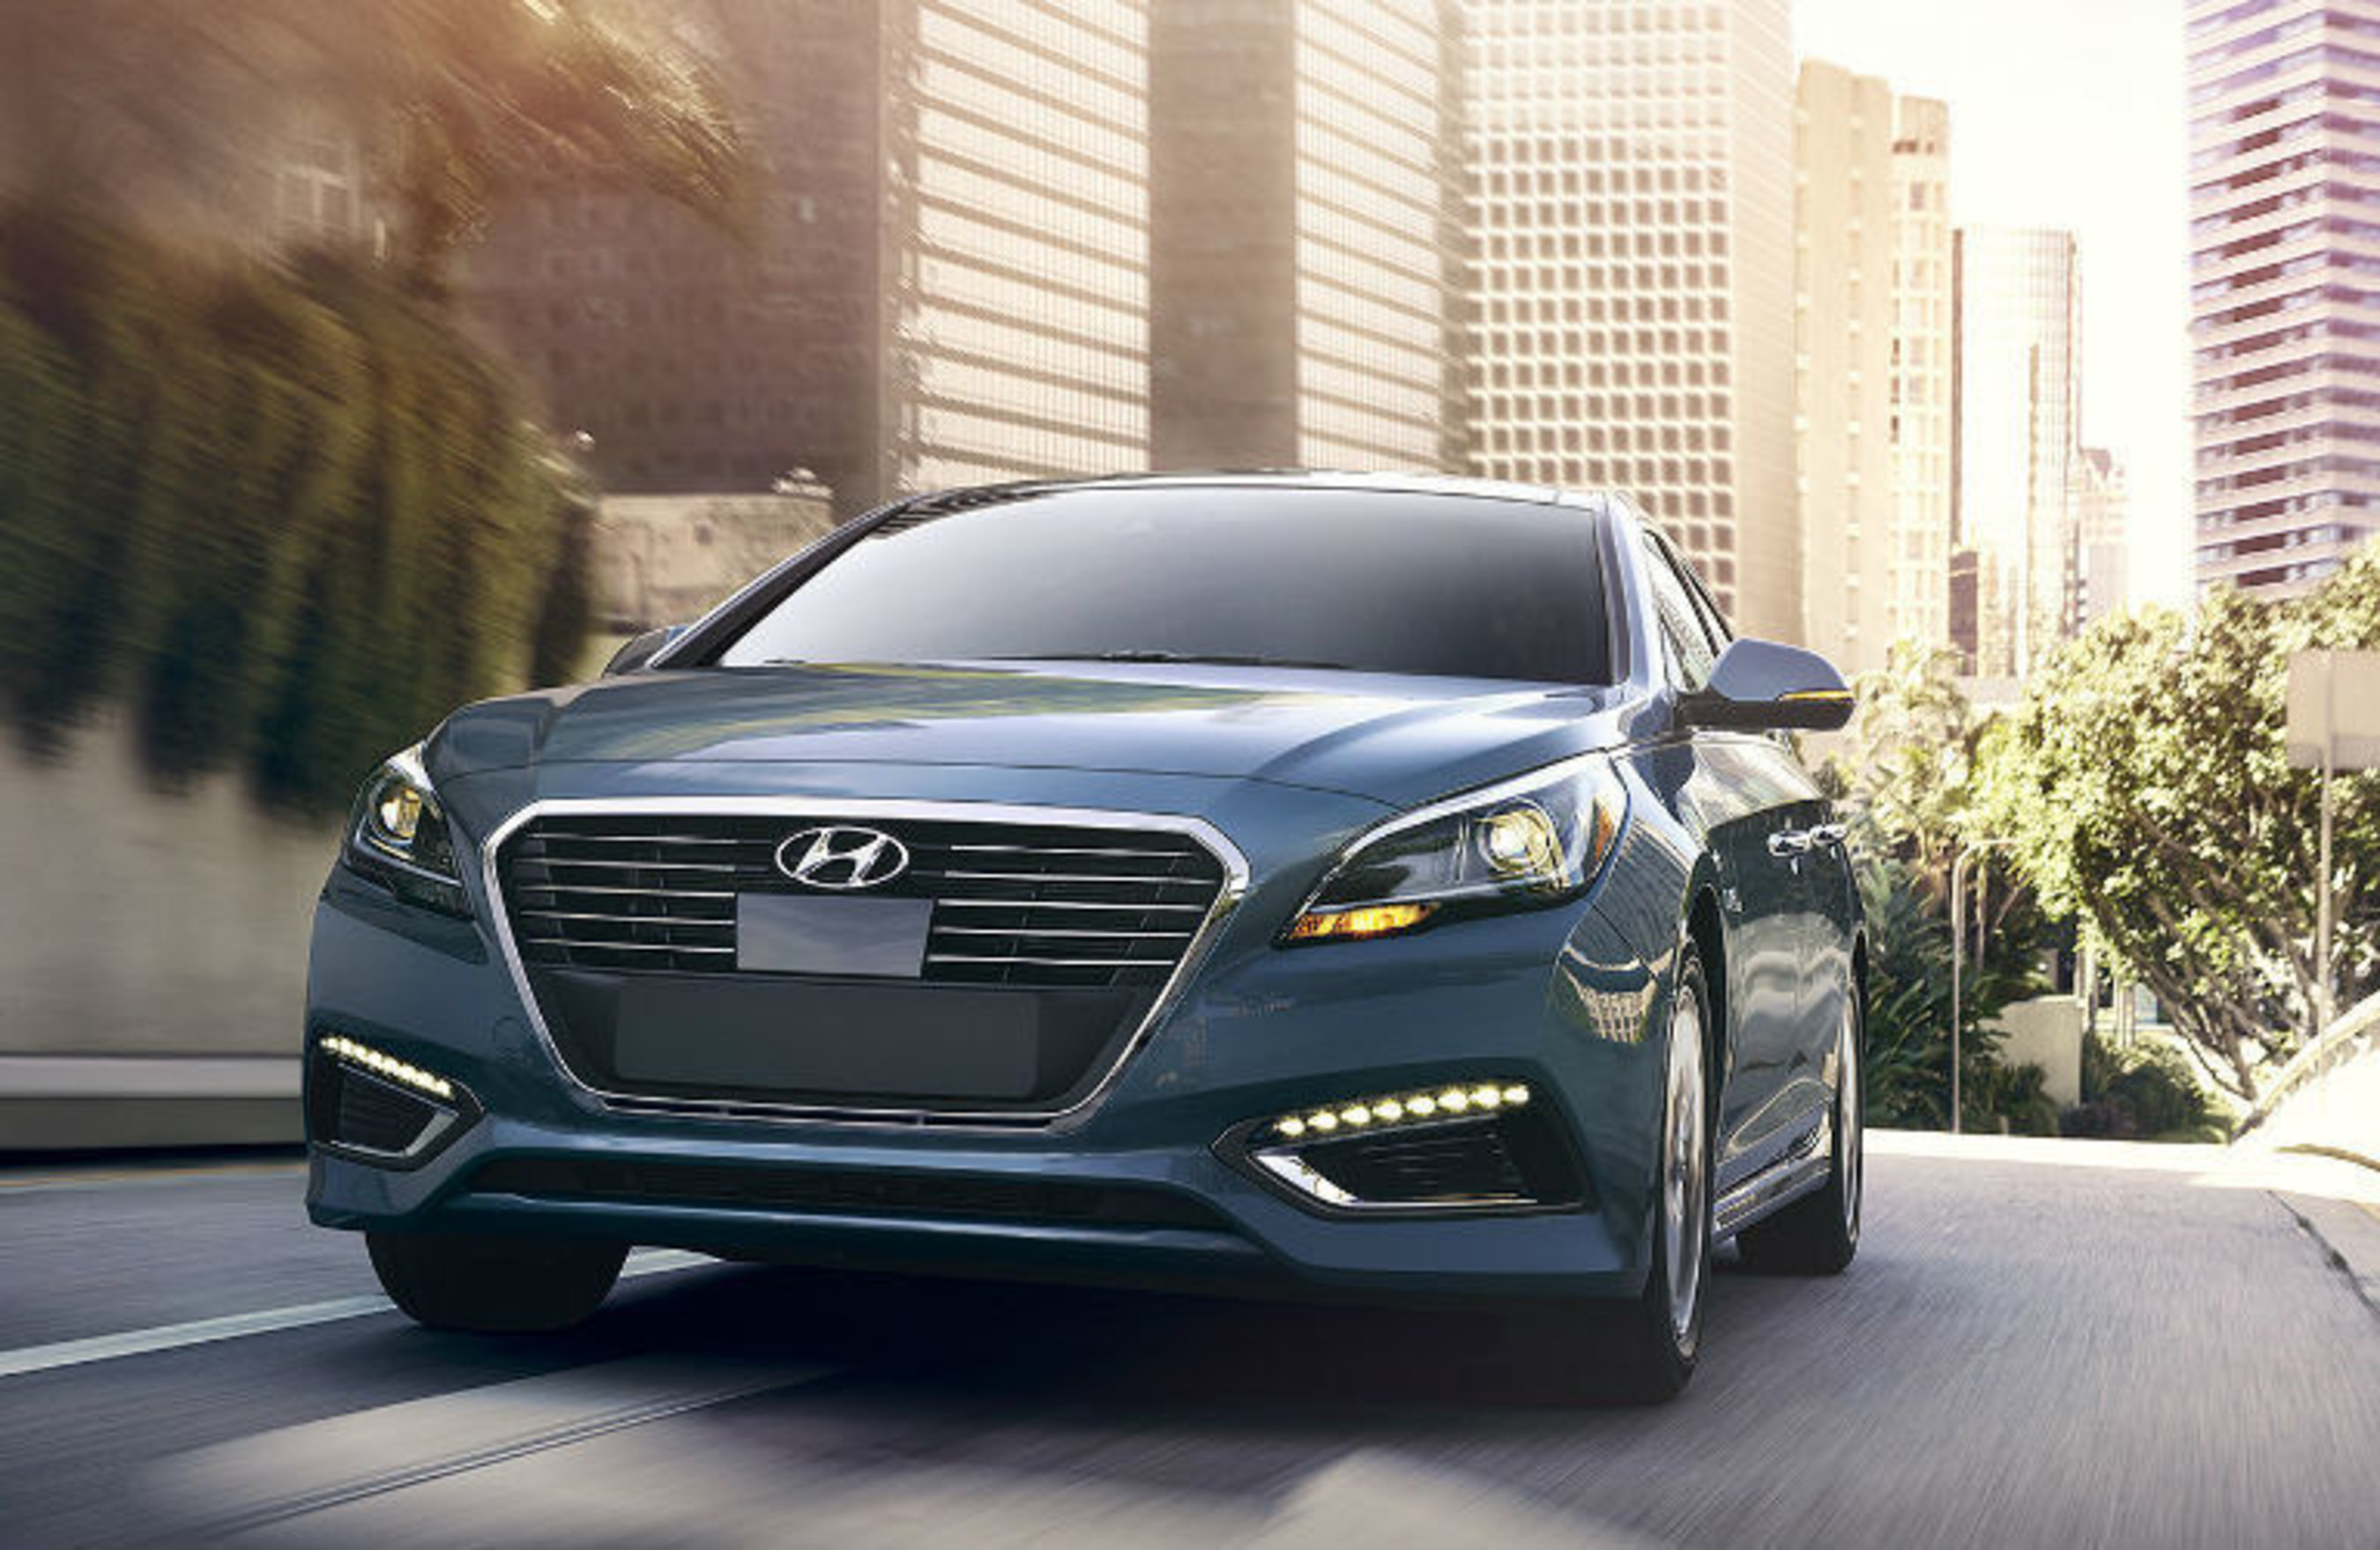 Large selection of pre-owned, fuel-efficient cars available at Carolina Hyundai of High Point